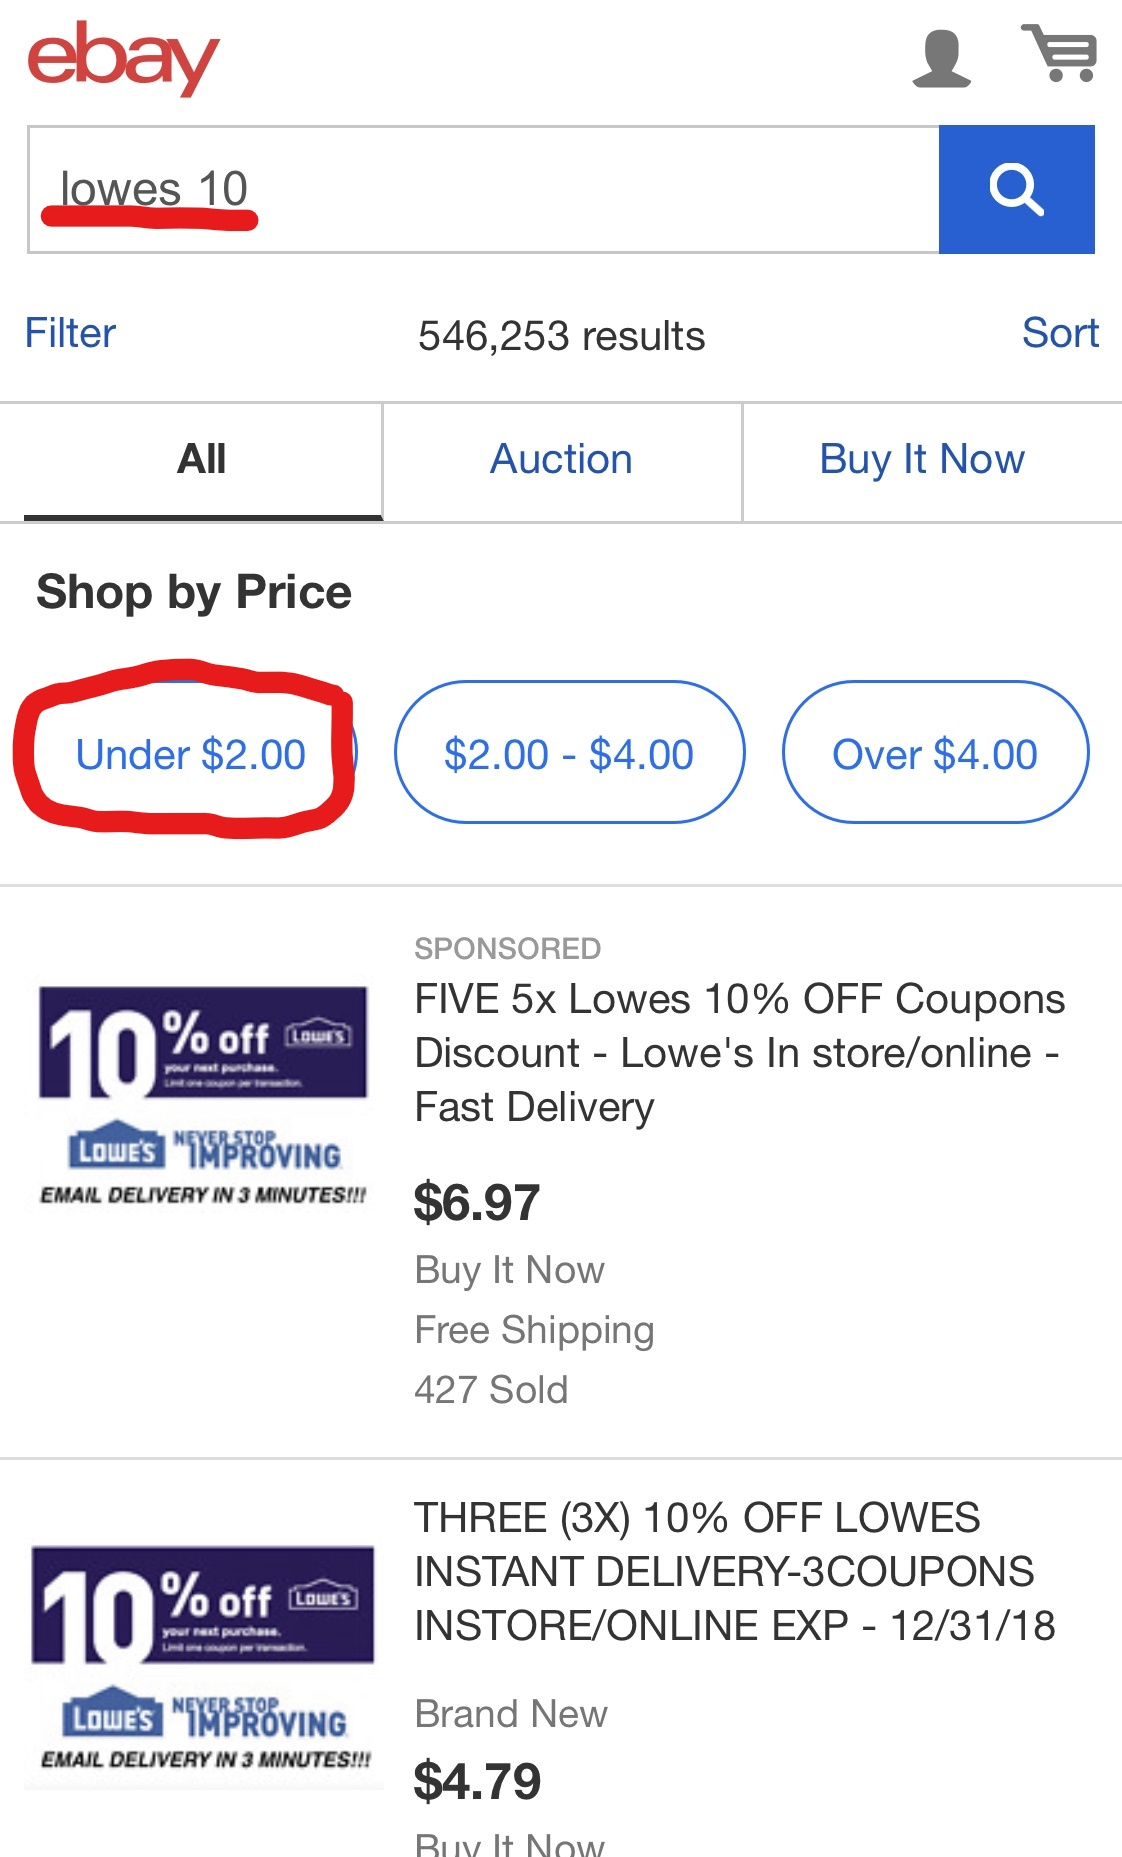 Lowes 10% coupon